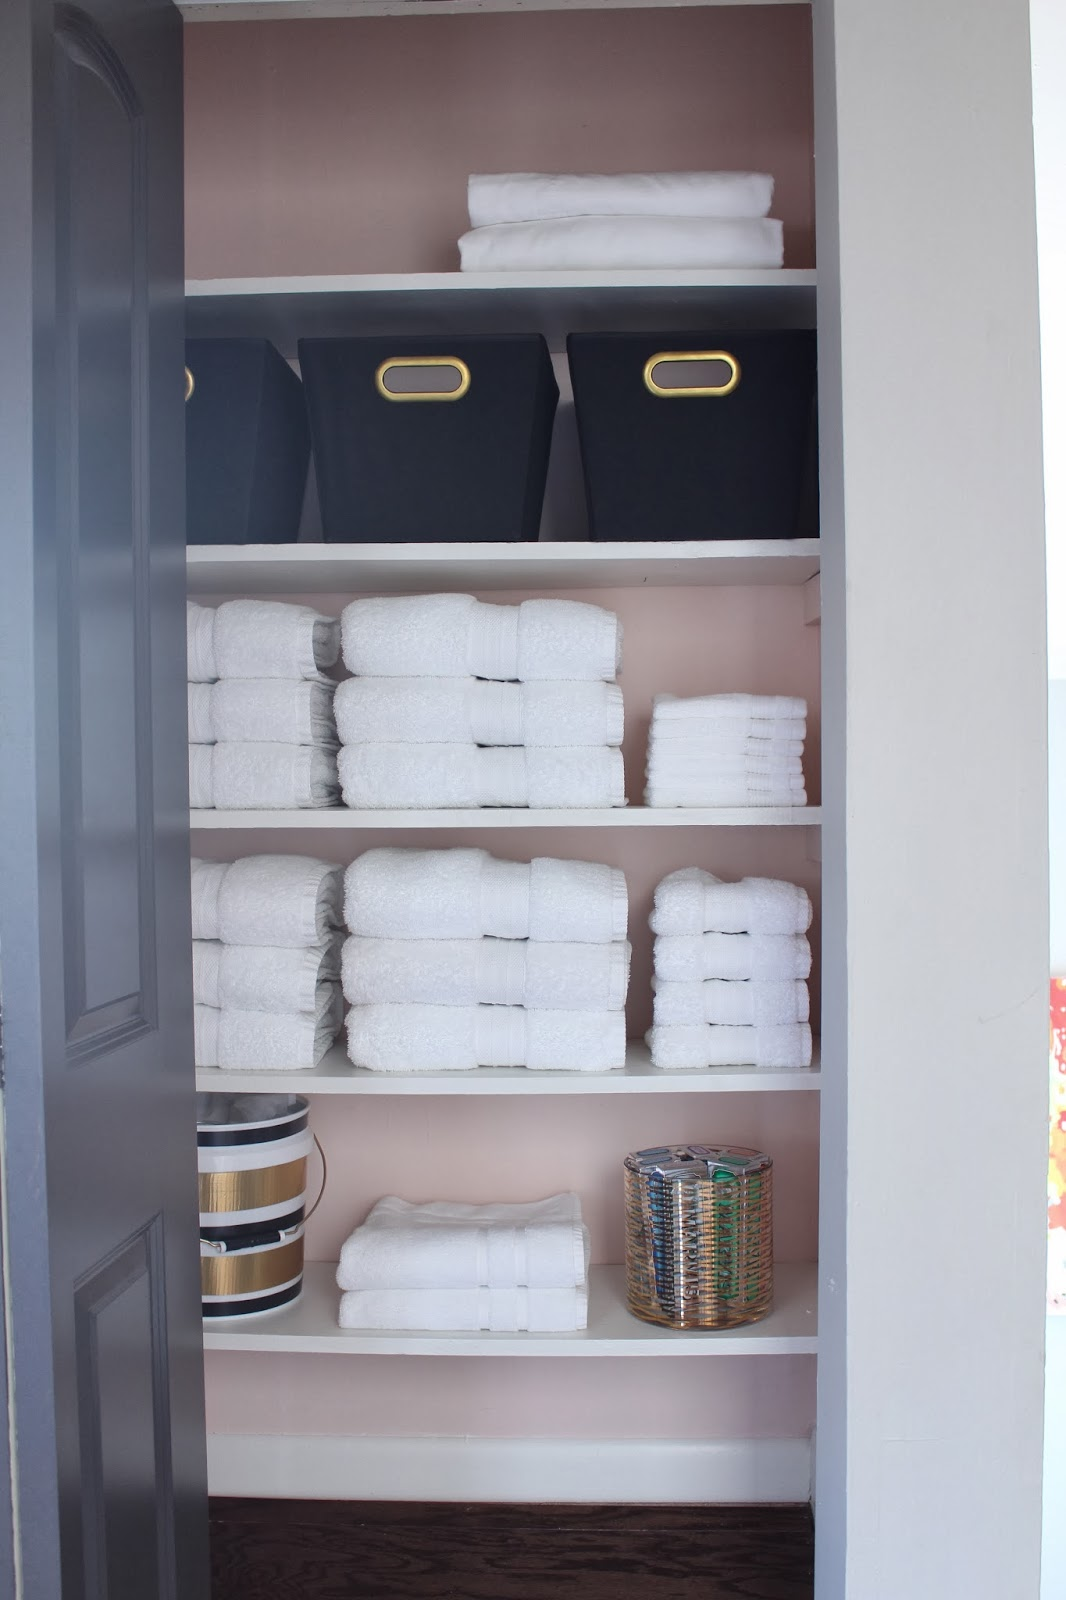 Linen Closet Organizer Systems Genius Linen Closet Ideas For Organization And